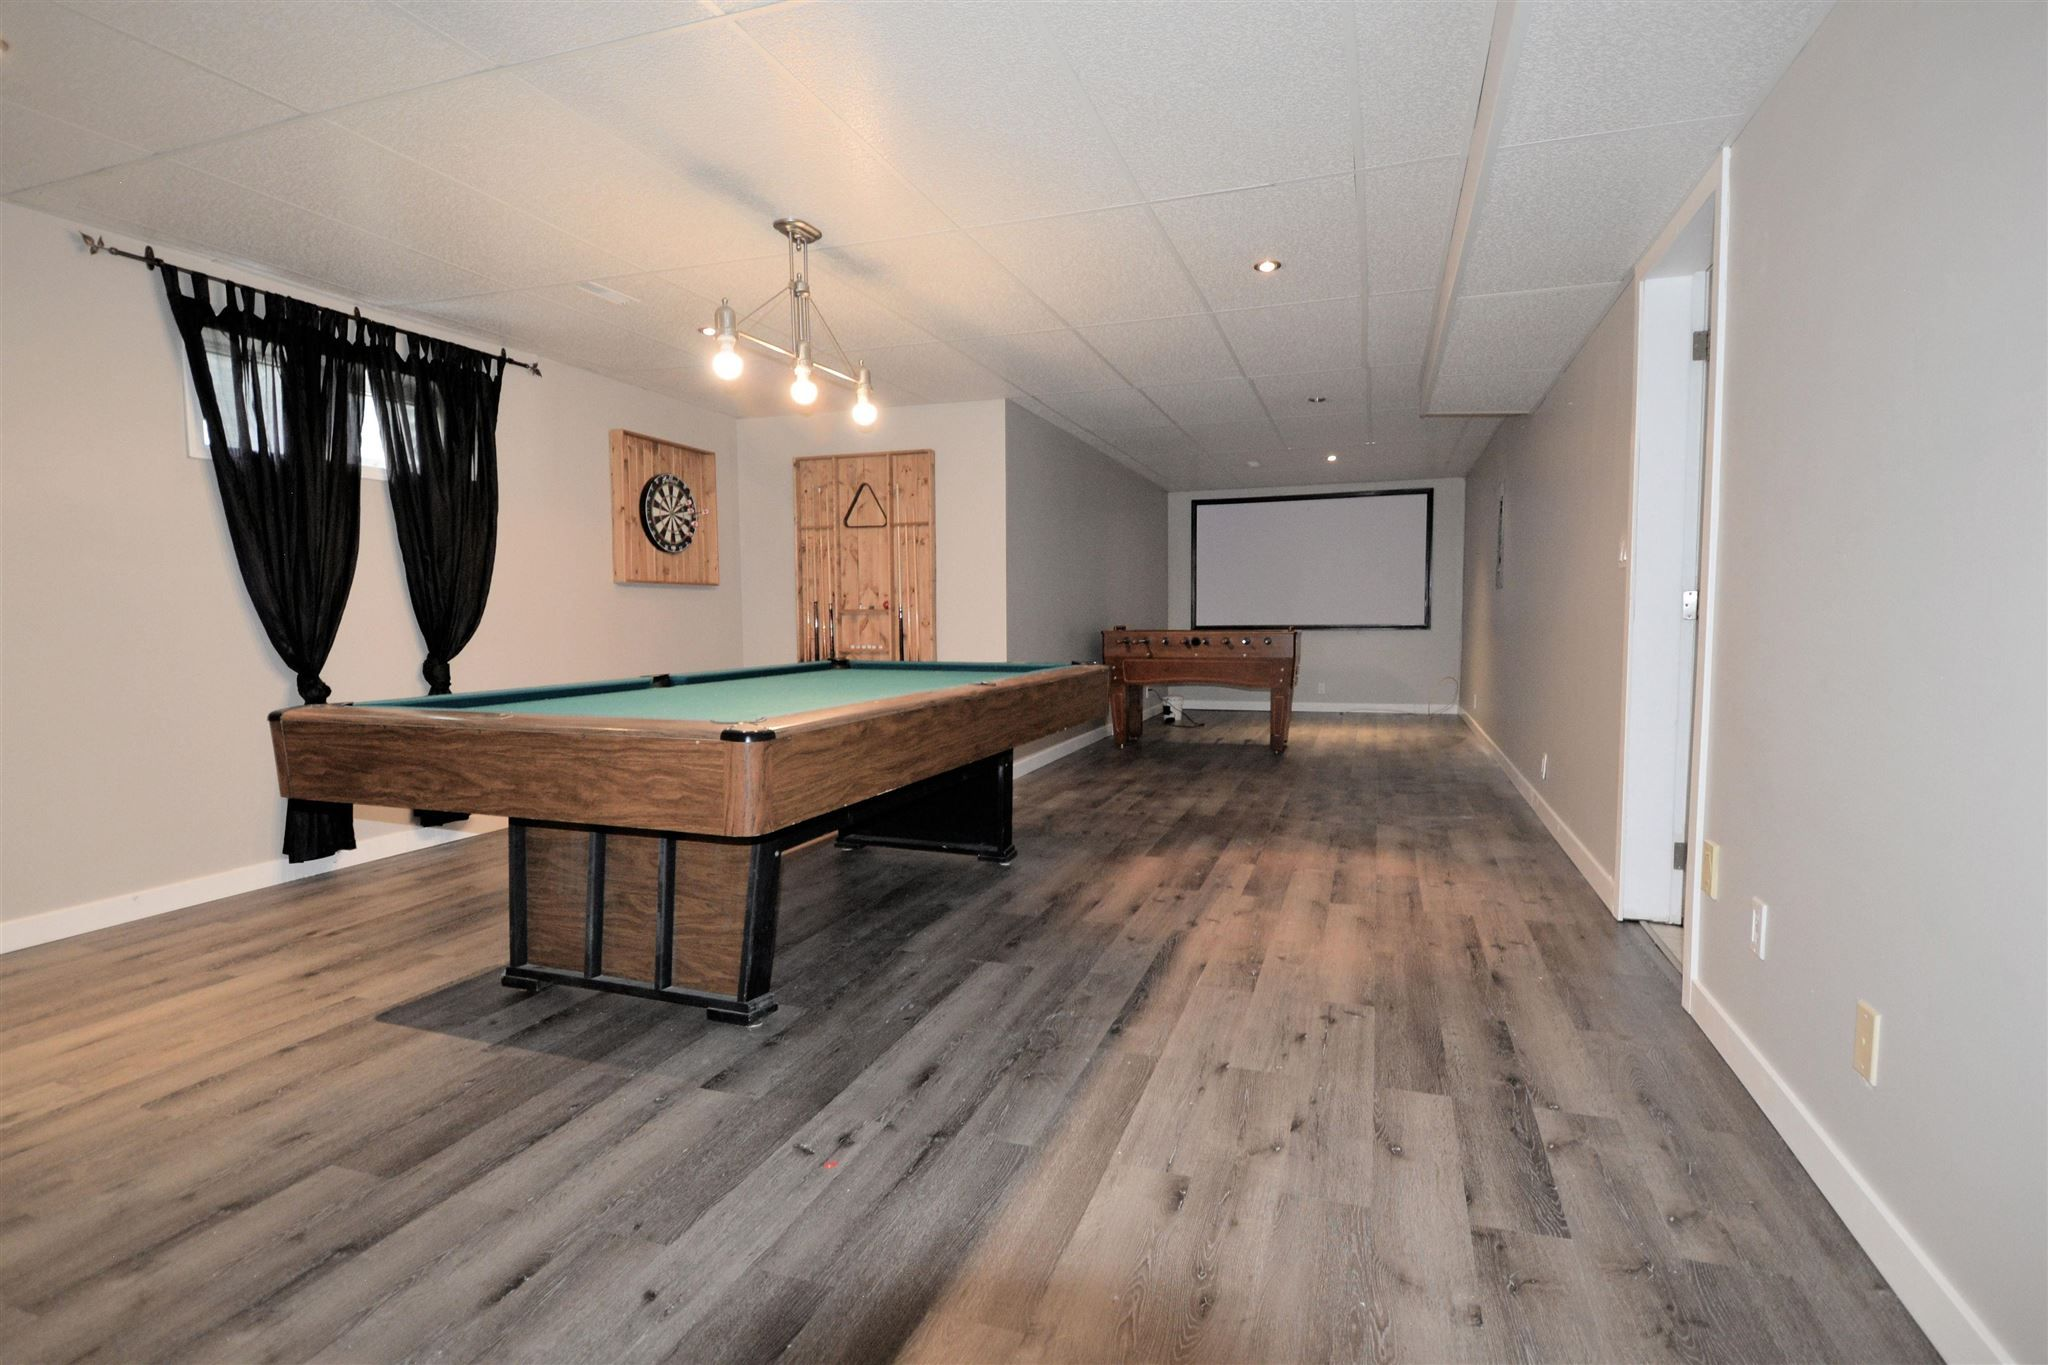 Photo 20: Photos: 2045 CROFT Road in Prince George: Ingala House for sale (PG City North (Zone 73))  : MLS®# R2600190